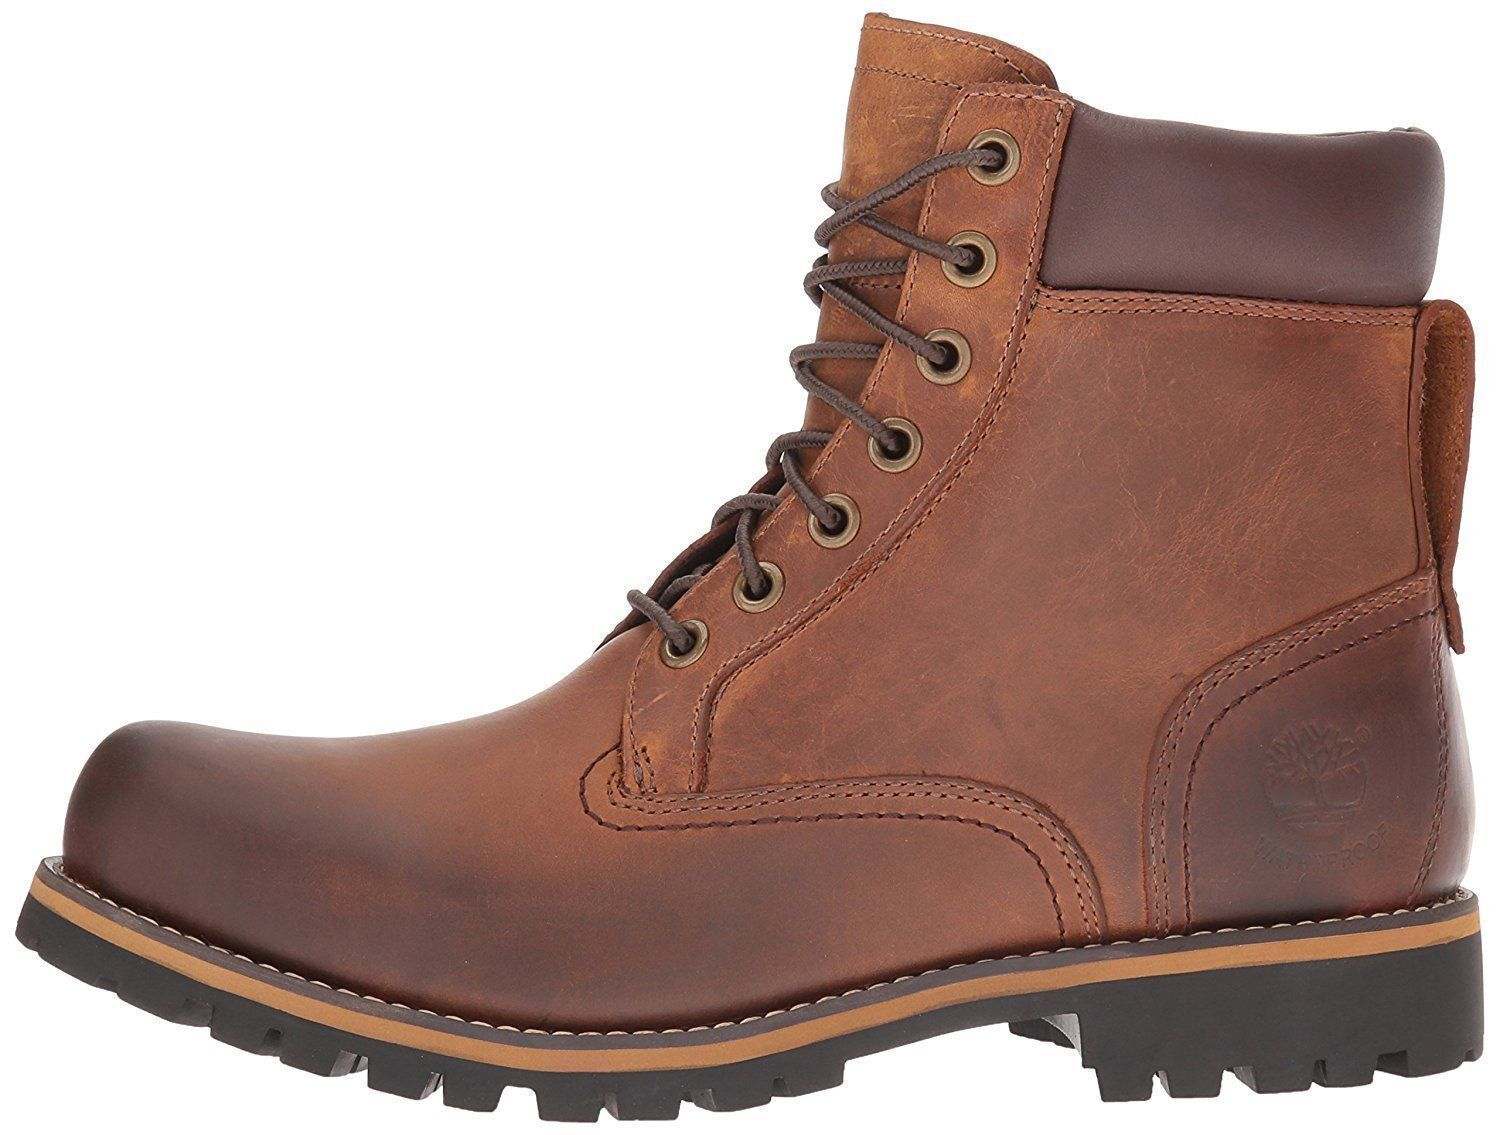 Timberland Rugged 6 Inch Waterproof Brown Men's Leather Boots 74134